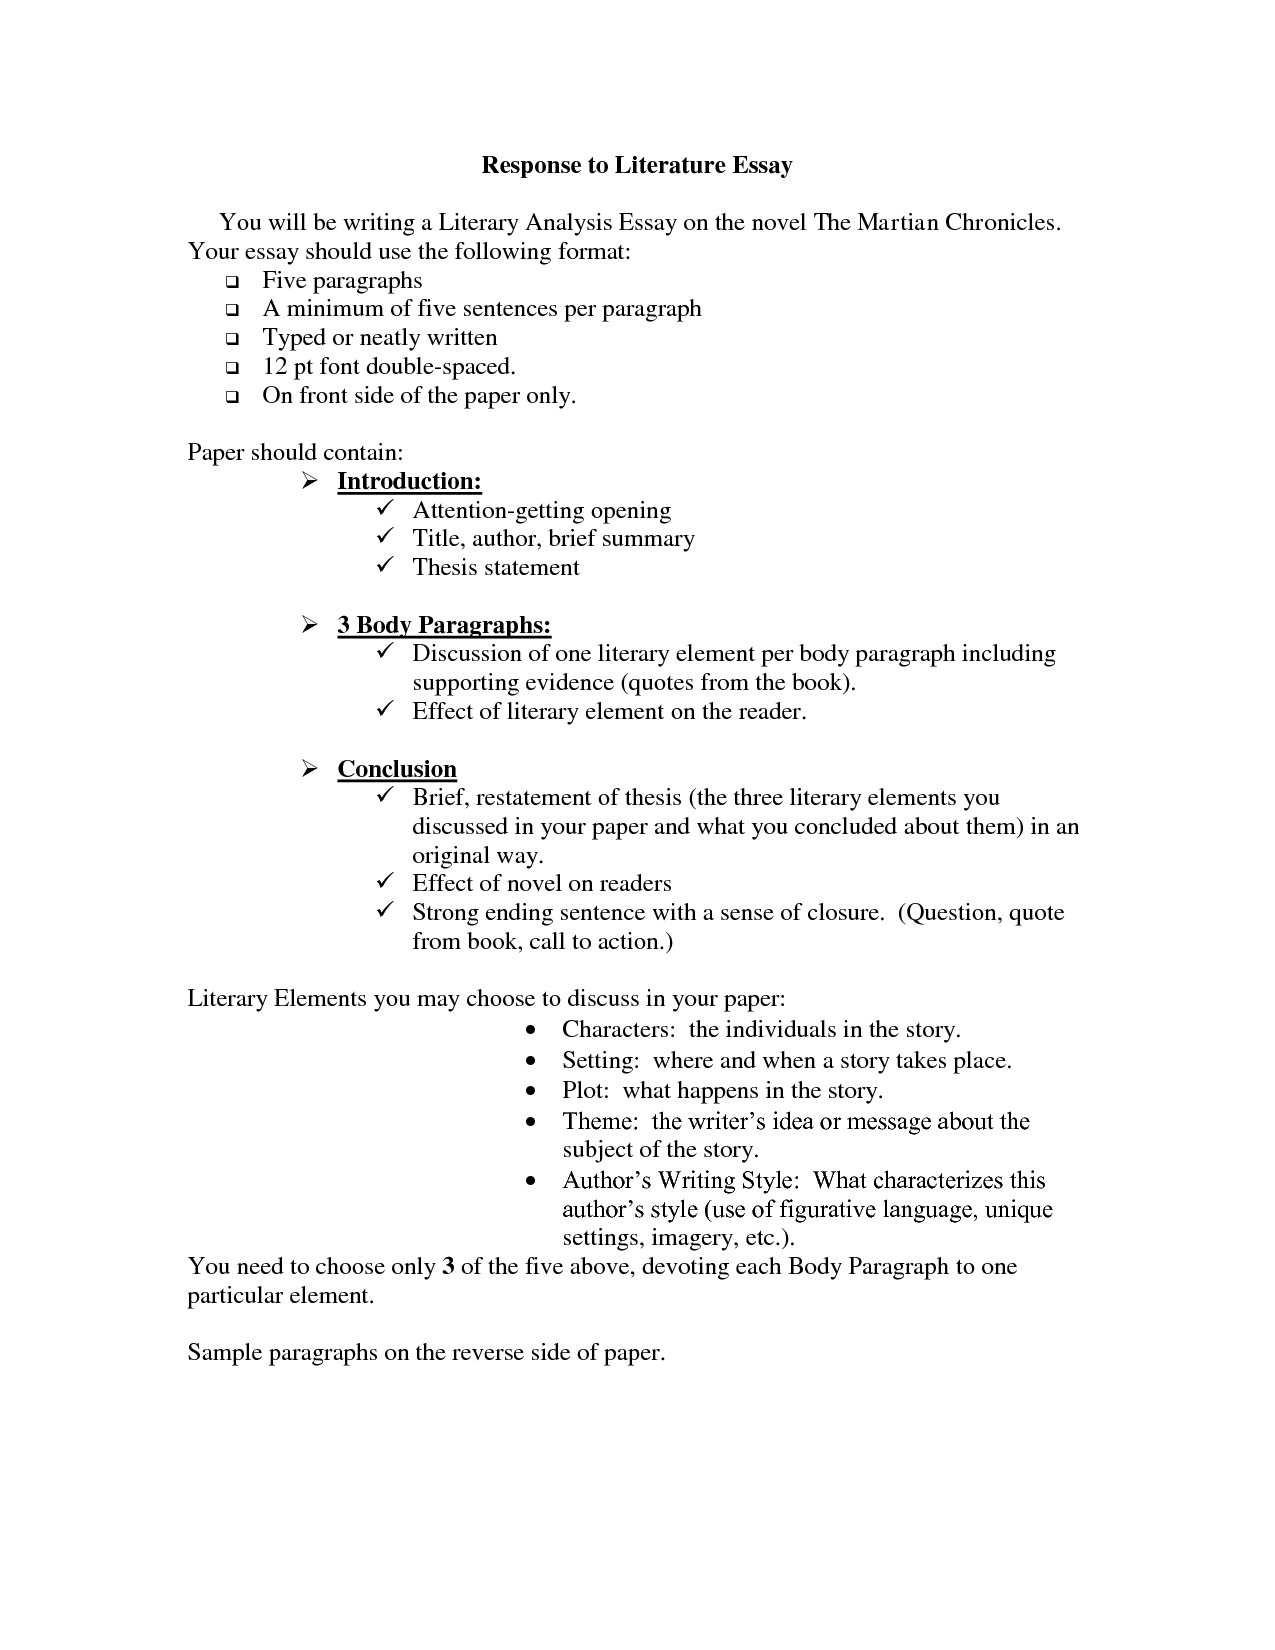 024 Mind Essay Example Brilliant Ideas Of Resume Cv Cover Letter Poetry Reflection Paper Poem Parison Creative